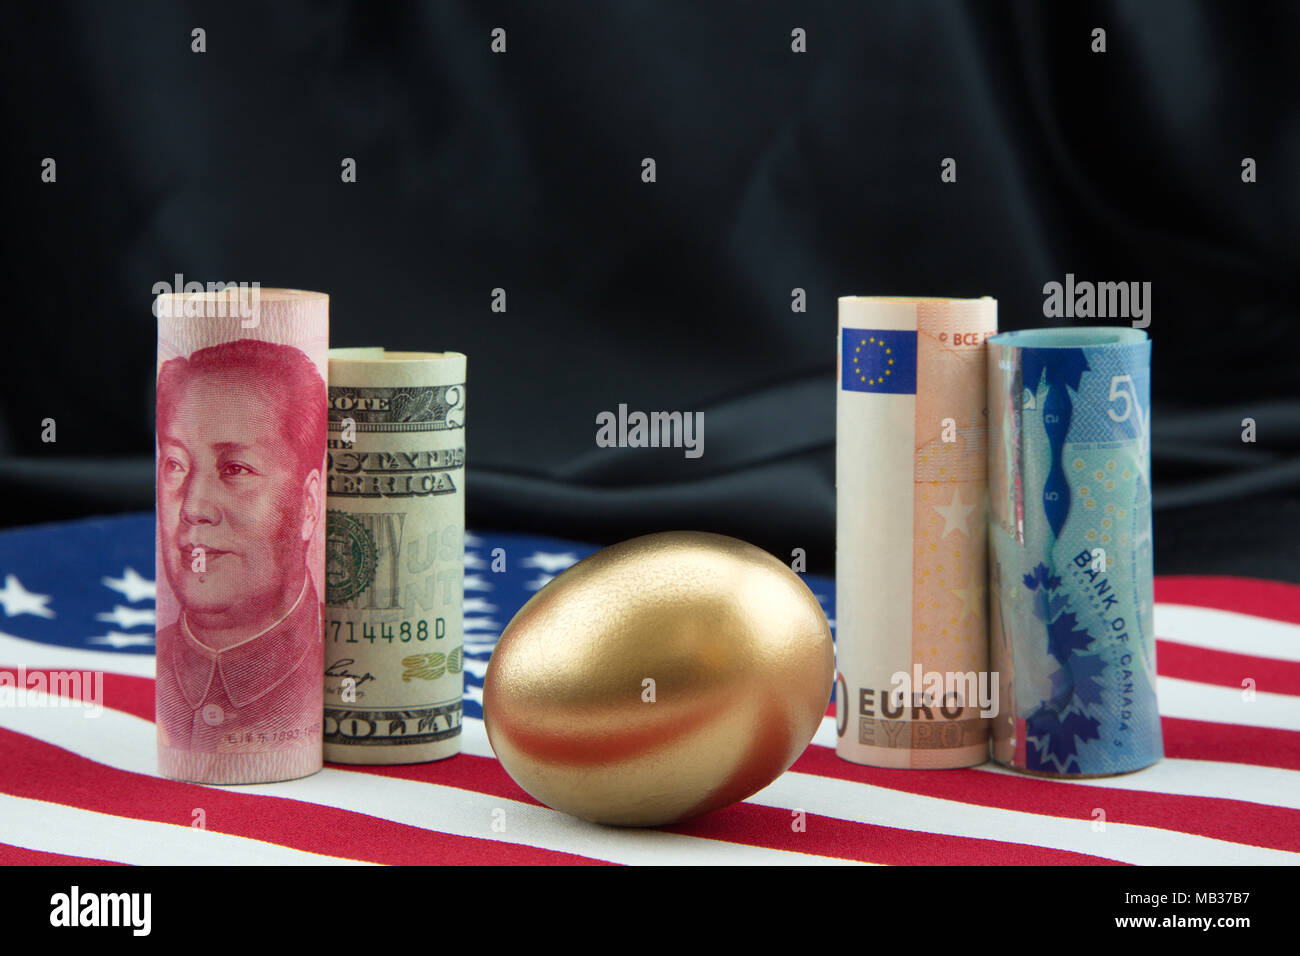 Multiple global currencies placed with gold egg on Americn flag reflect global connections underlying balanced financial portfolios, modern businesses - Stock Image